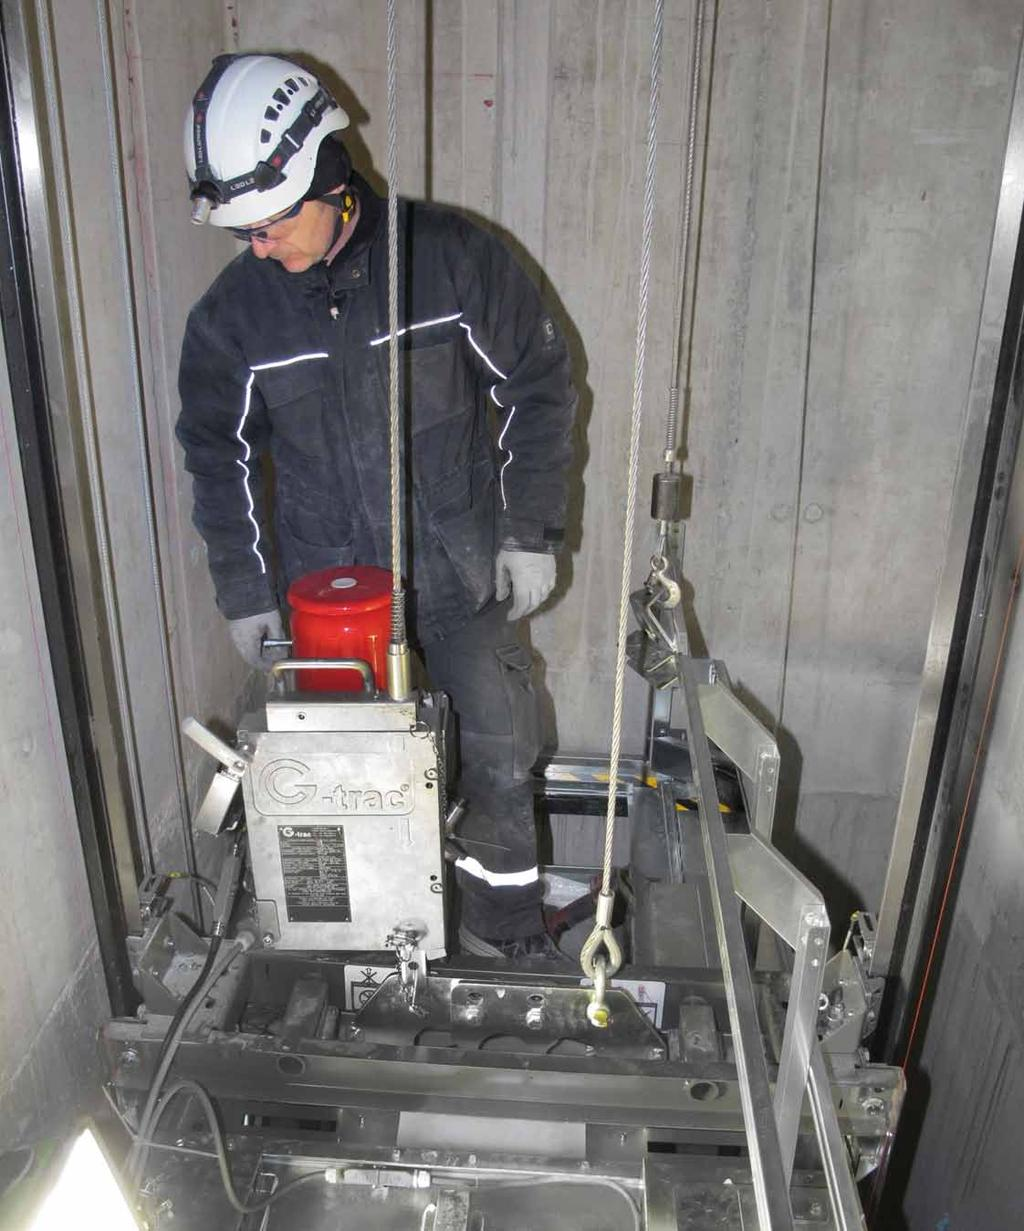 www.goracon.com Scaffold-free lift installation solutions from saves time and money. We provide mobilty during the installation phase until a drive for your lift has been installed.